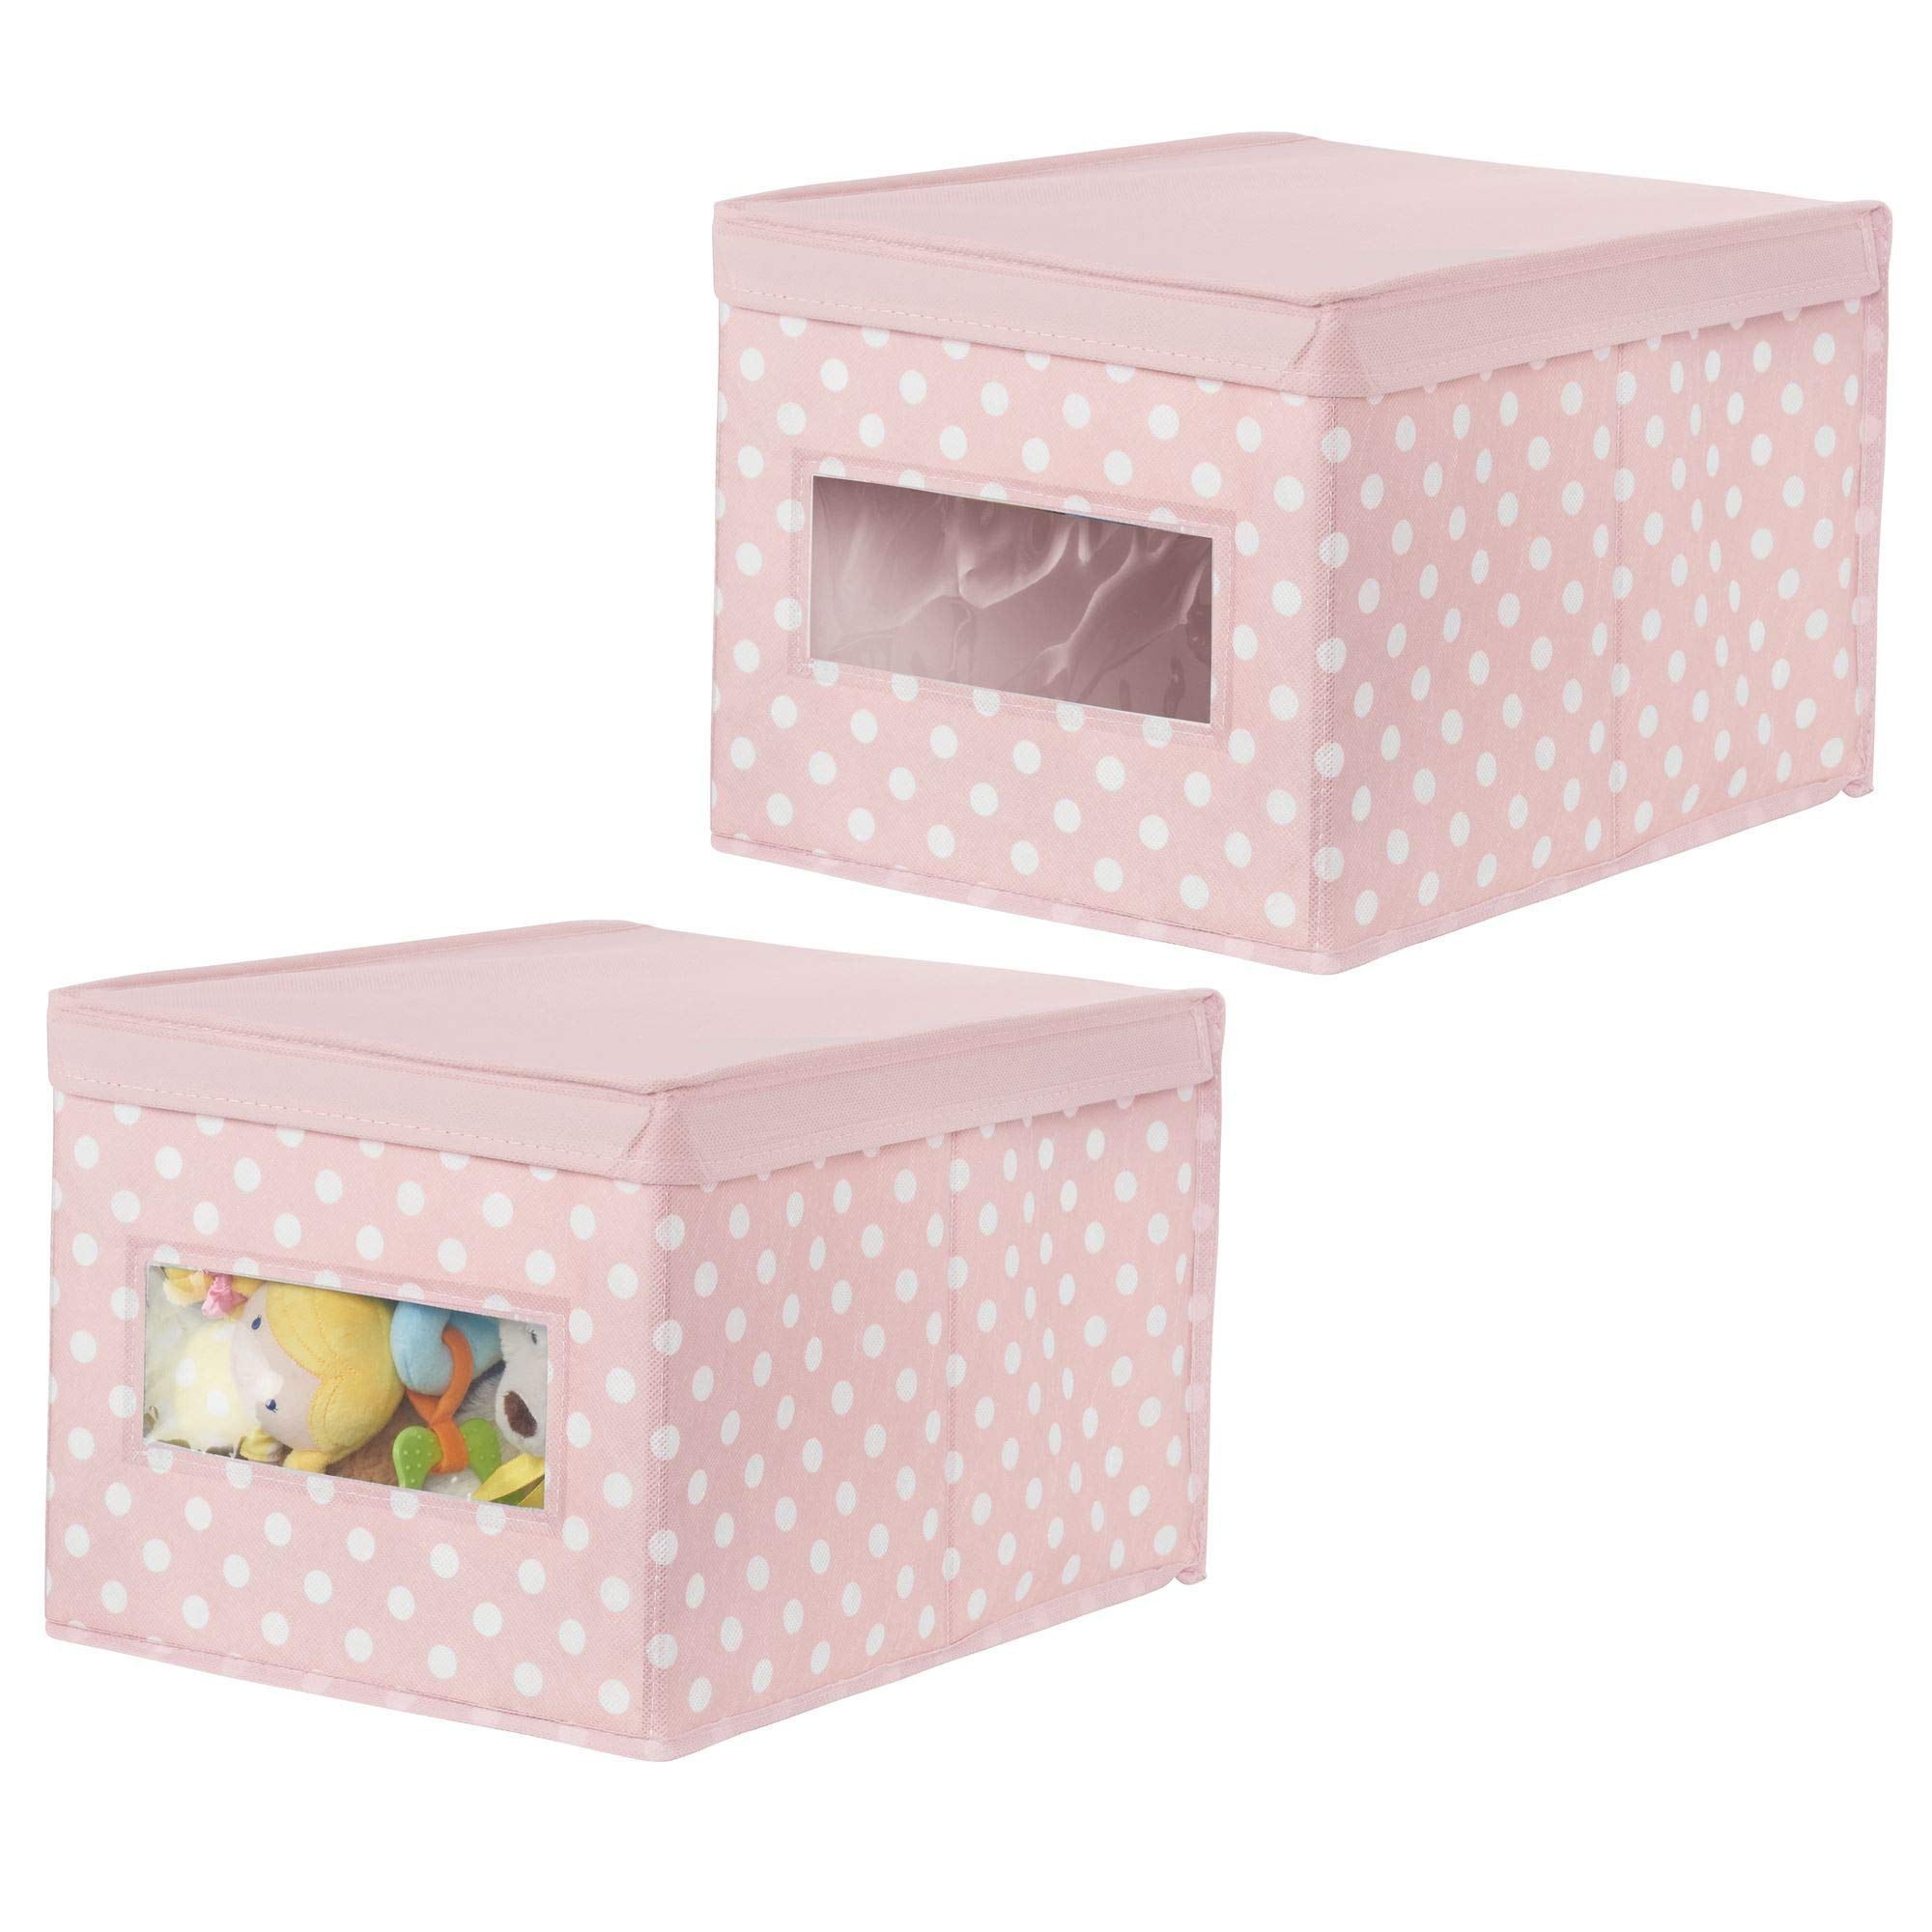 mDesign Soft Stackable Fabric Closet Storage Organizer Holder Box - Clear Window, Attached Hinged Lid, for Child/Kids Room, Nursery, Playroom -Polka Dot Pattern -Large, Pink with White Dots, Pack of 2